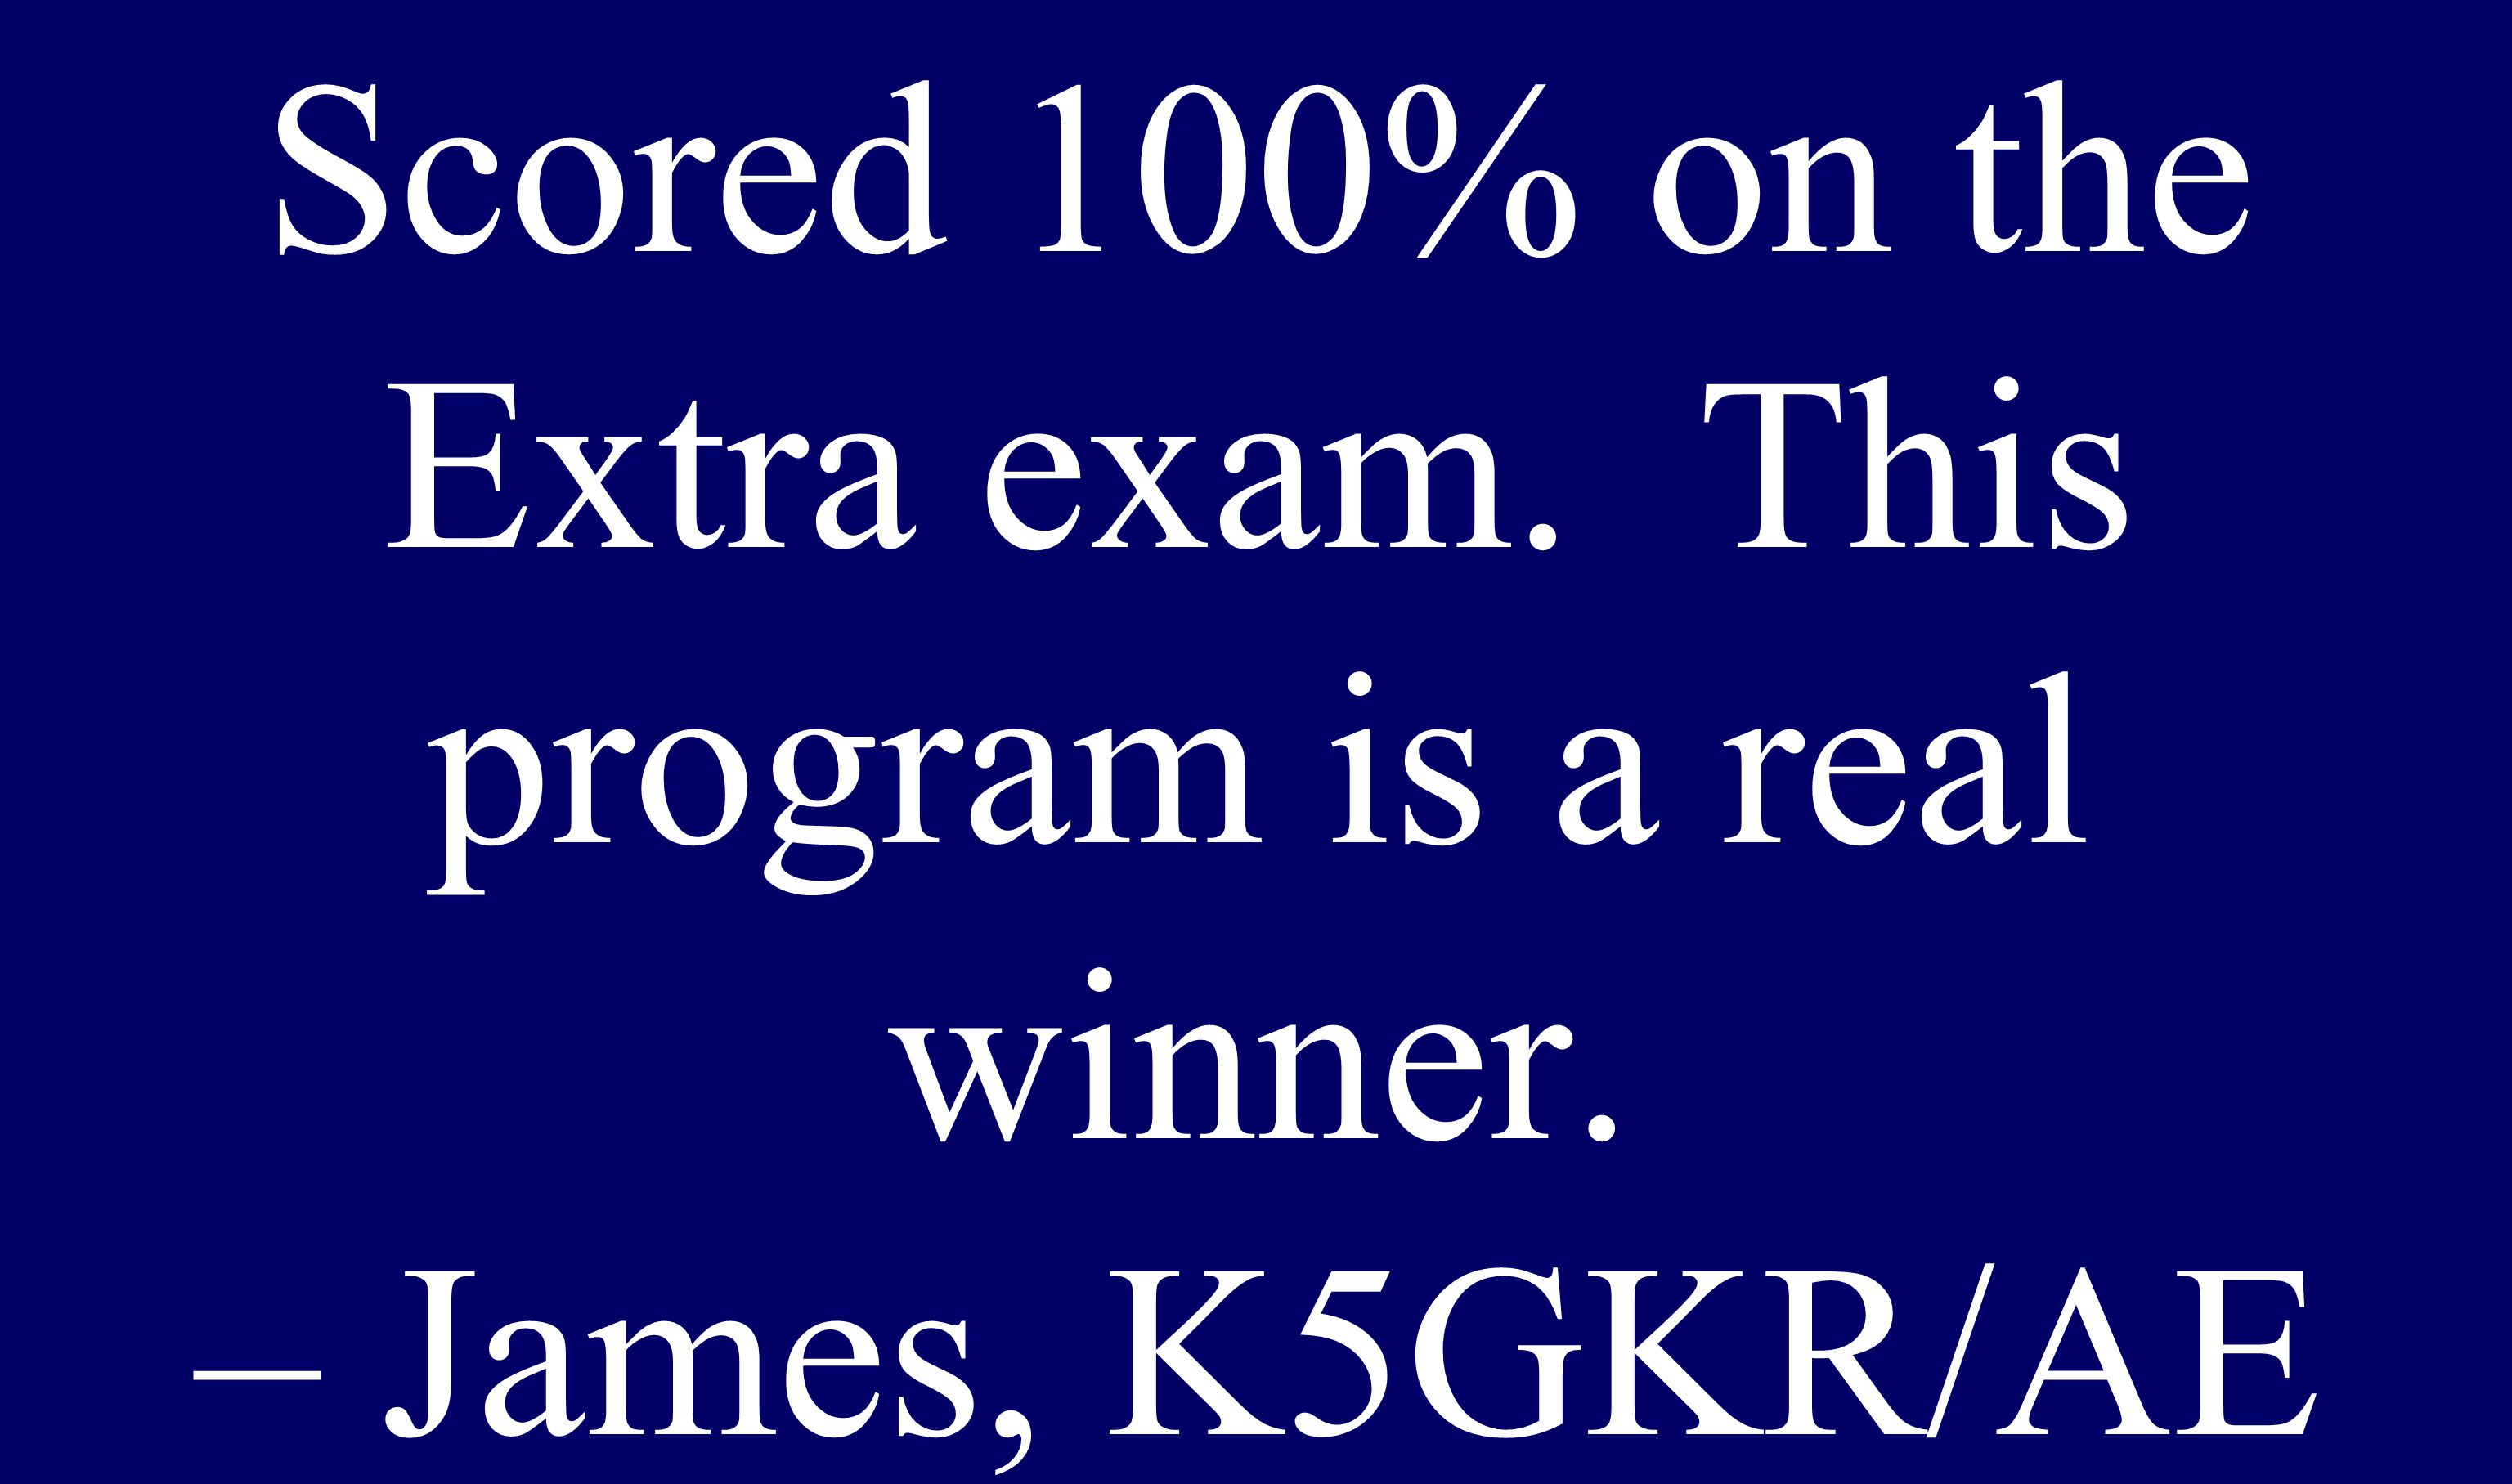 Scored 100% on the Extra exam. This program is a real winner. – James, K5GKR/AE